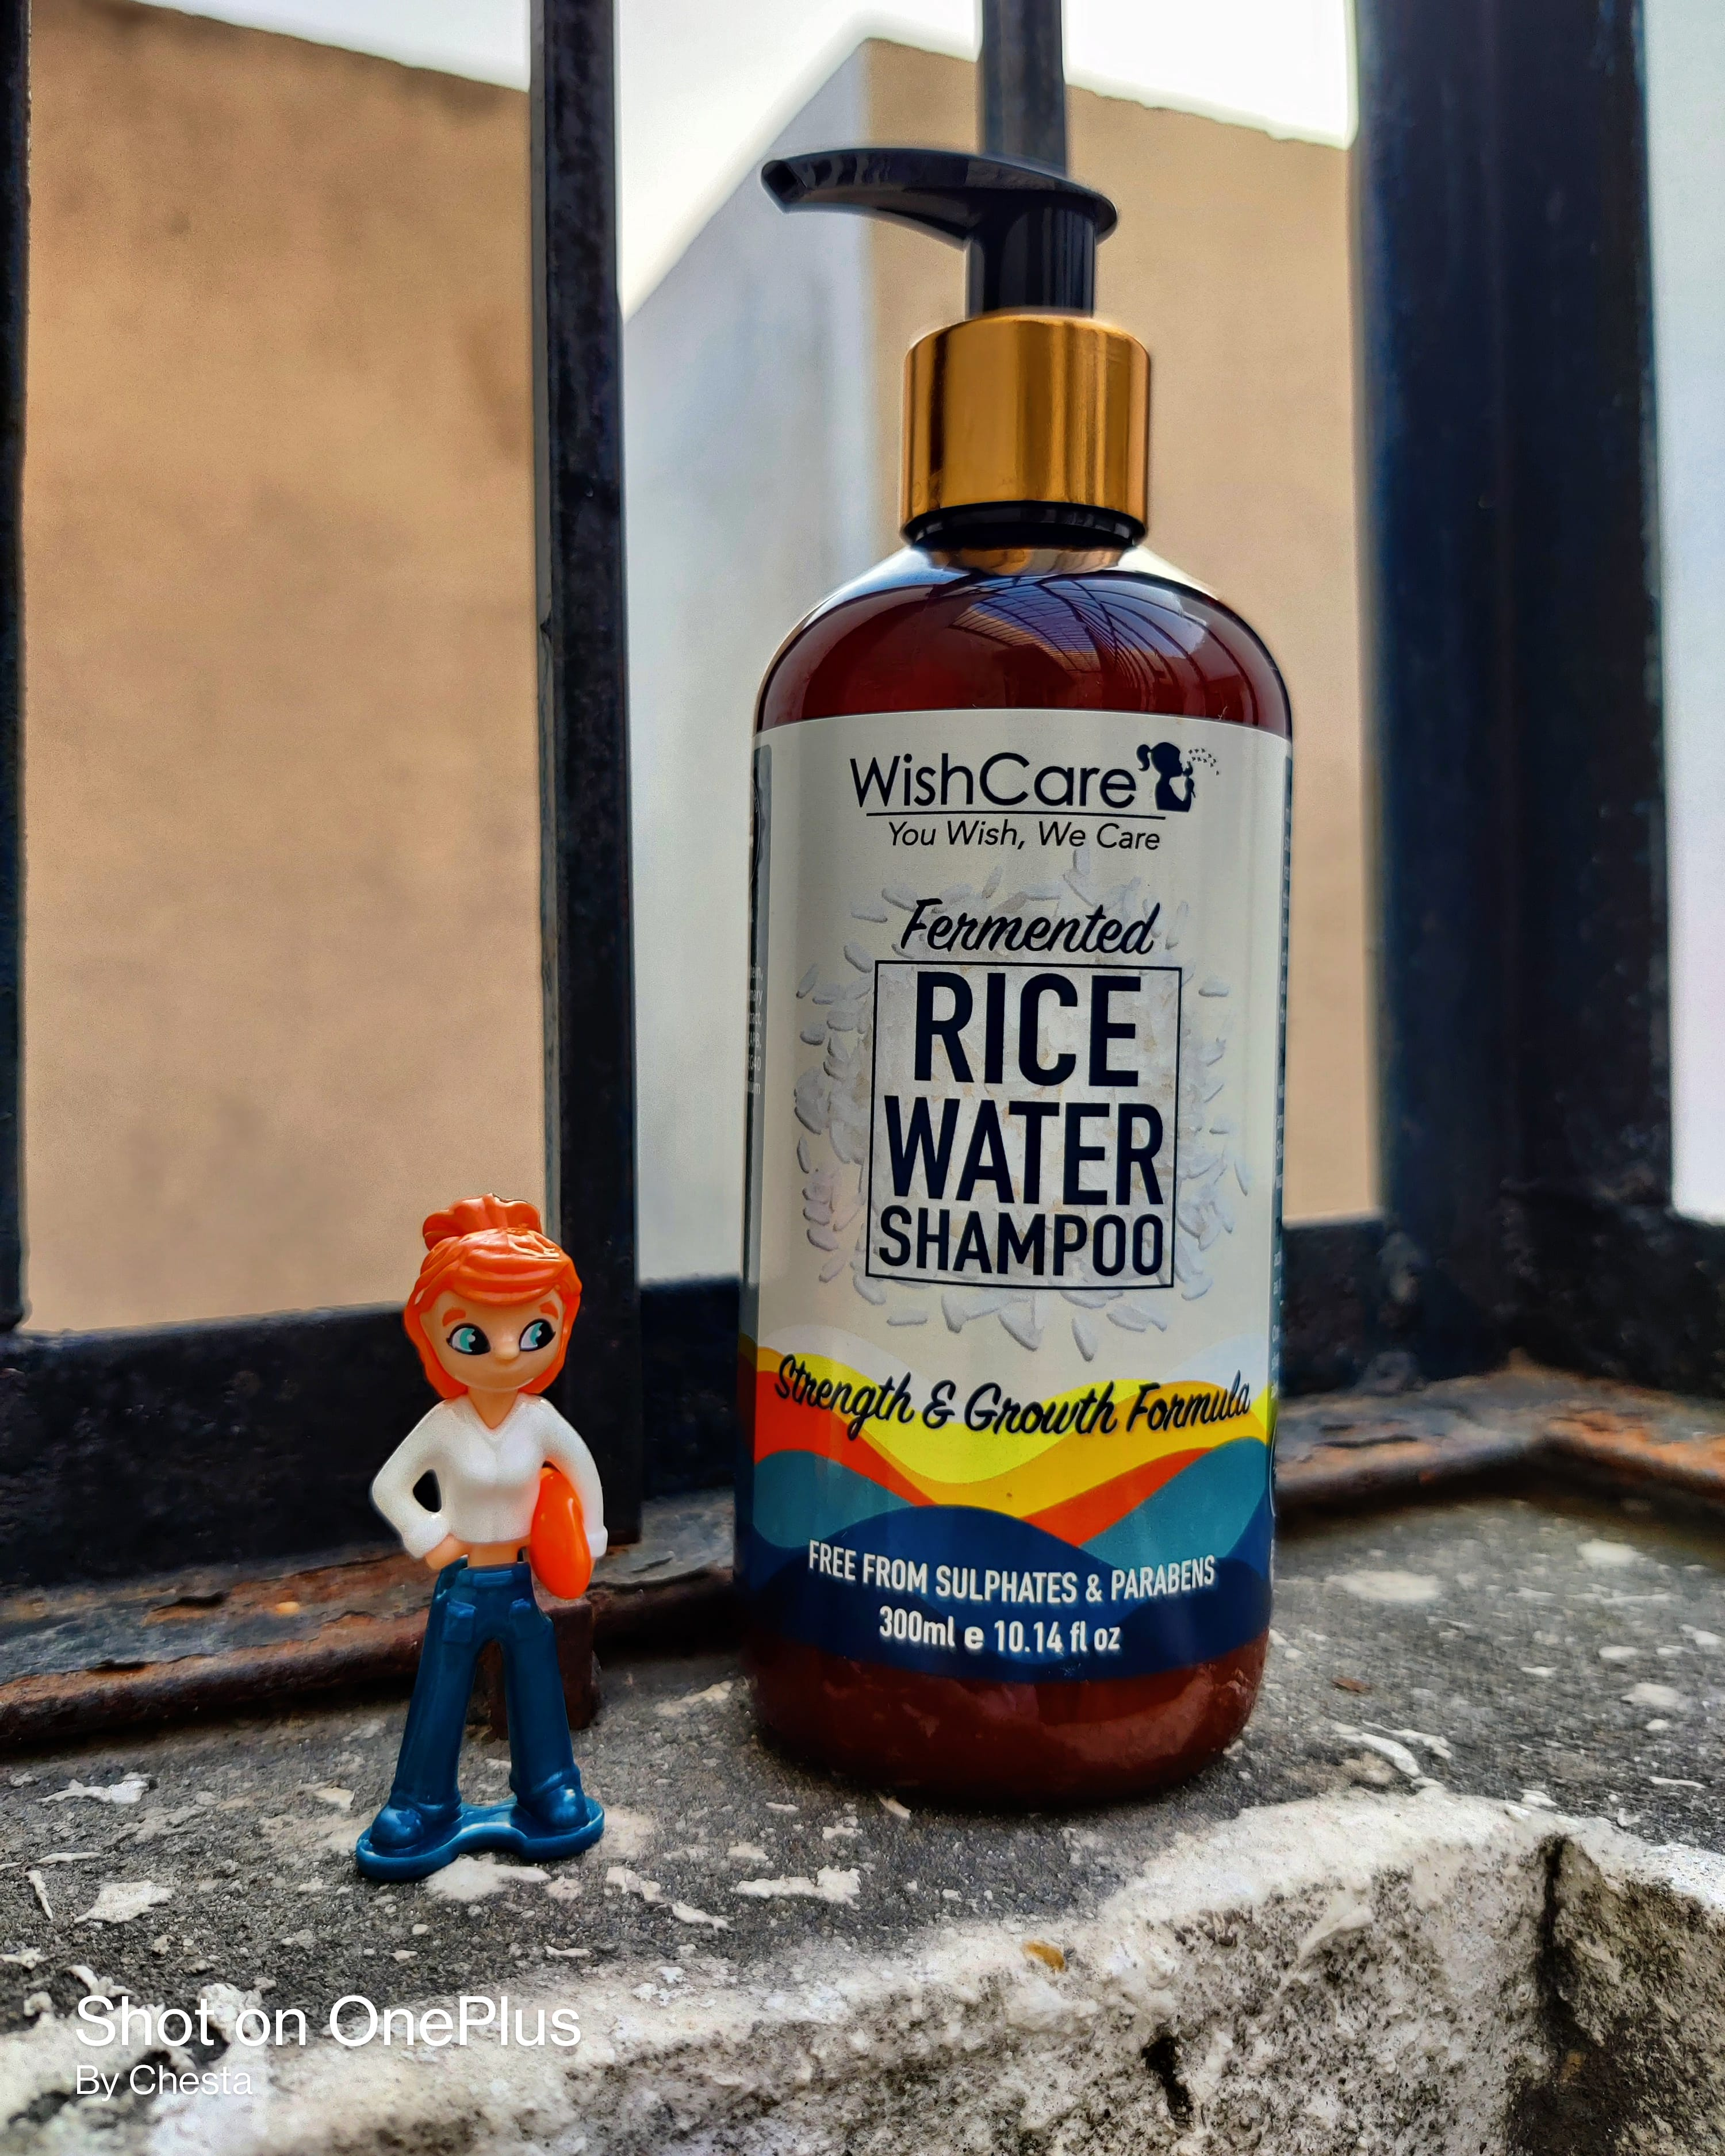 WishCare Fermented Rice Water Shampoo-Strong and smooth hairs-By chesta